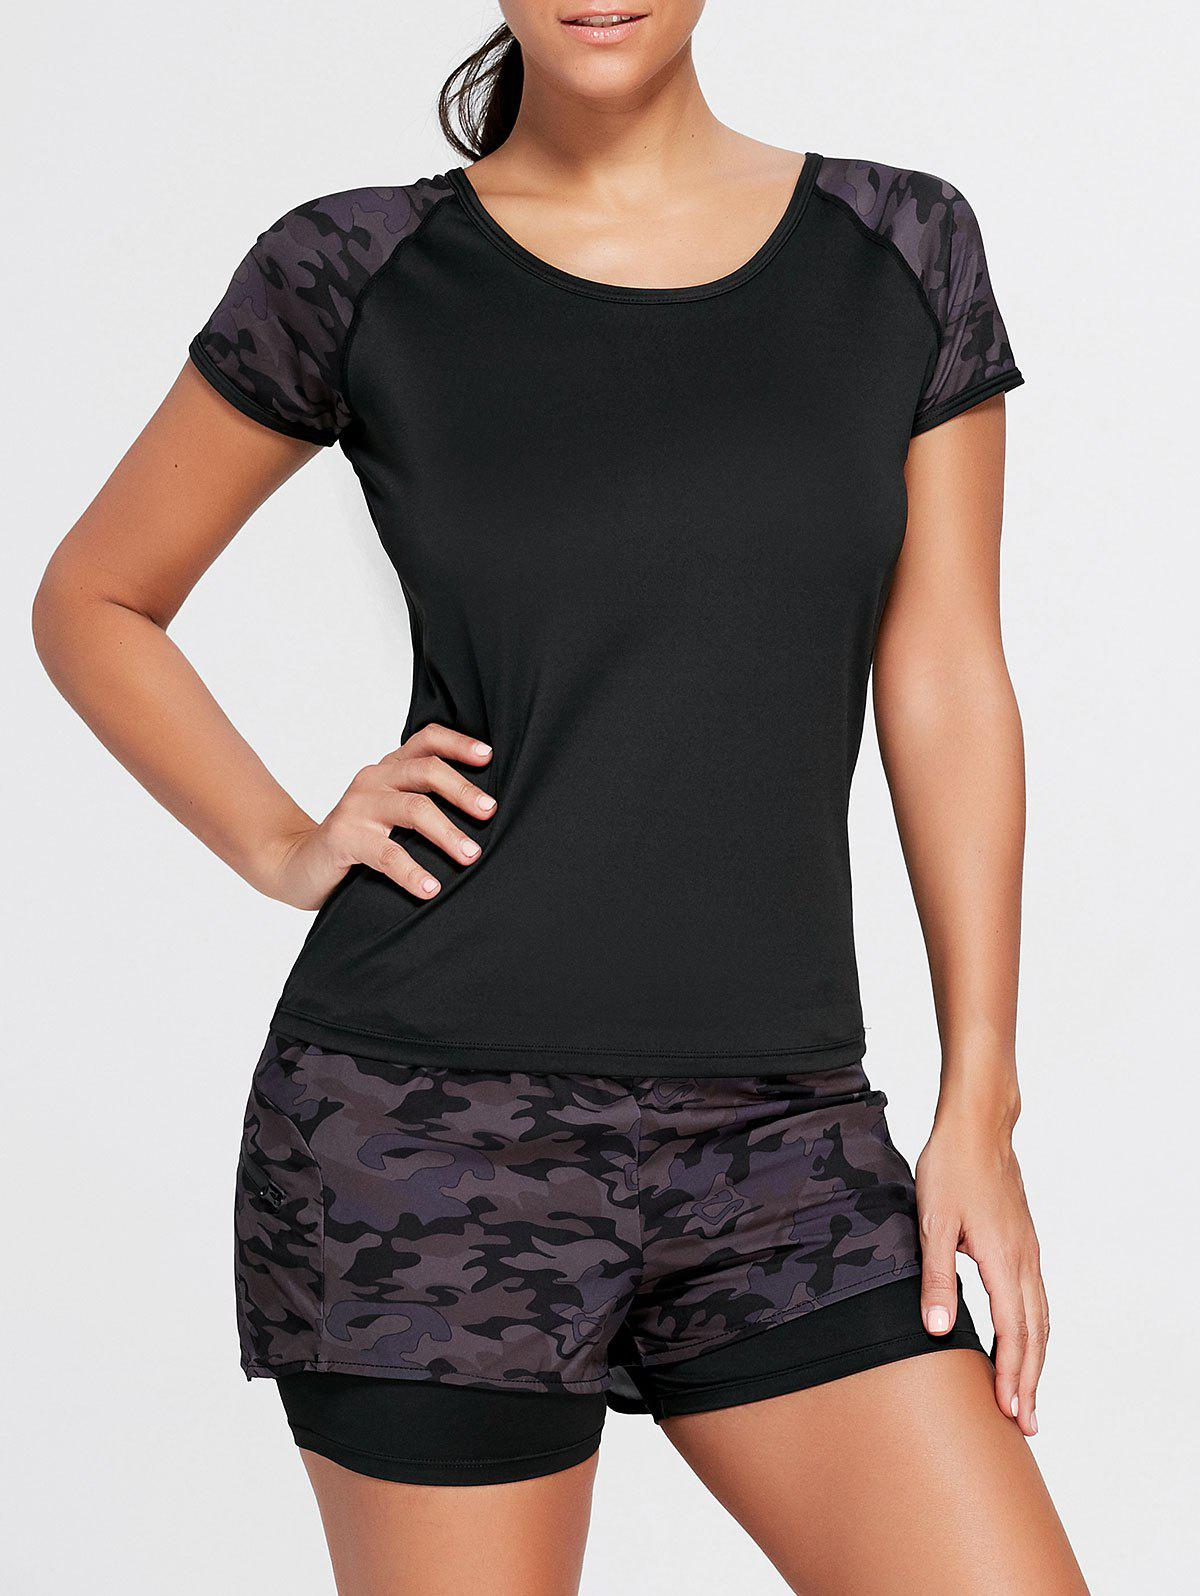 Camo Short Sleeve Sports Raglan Tee - Noir S